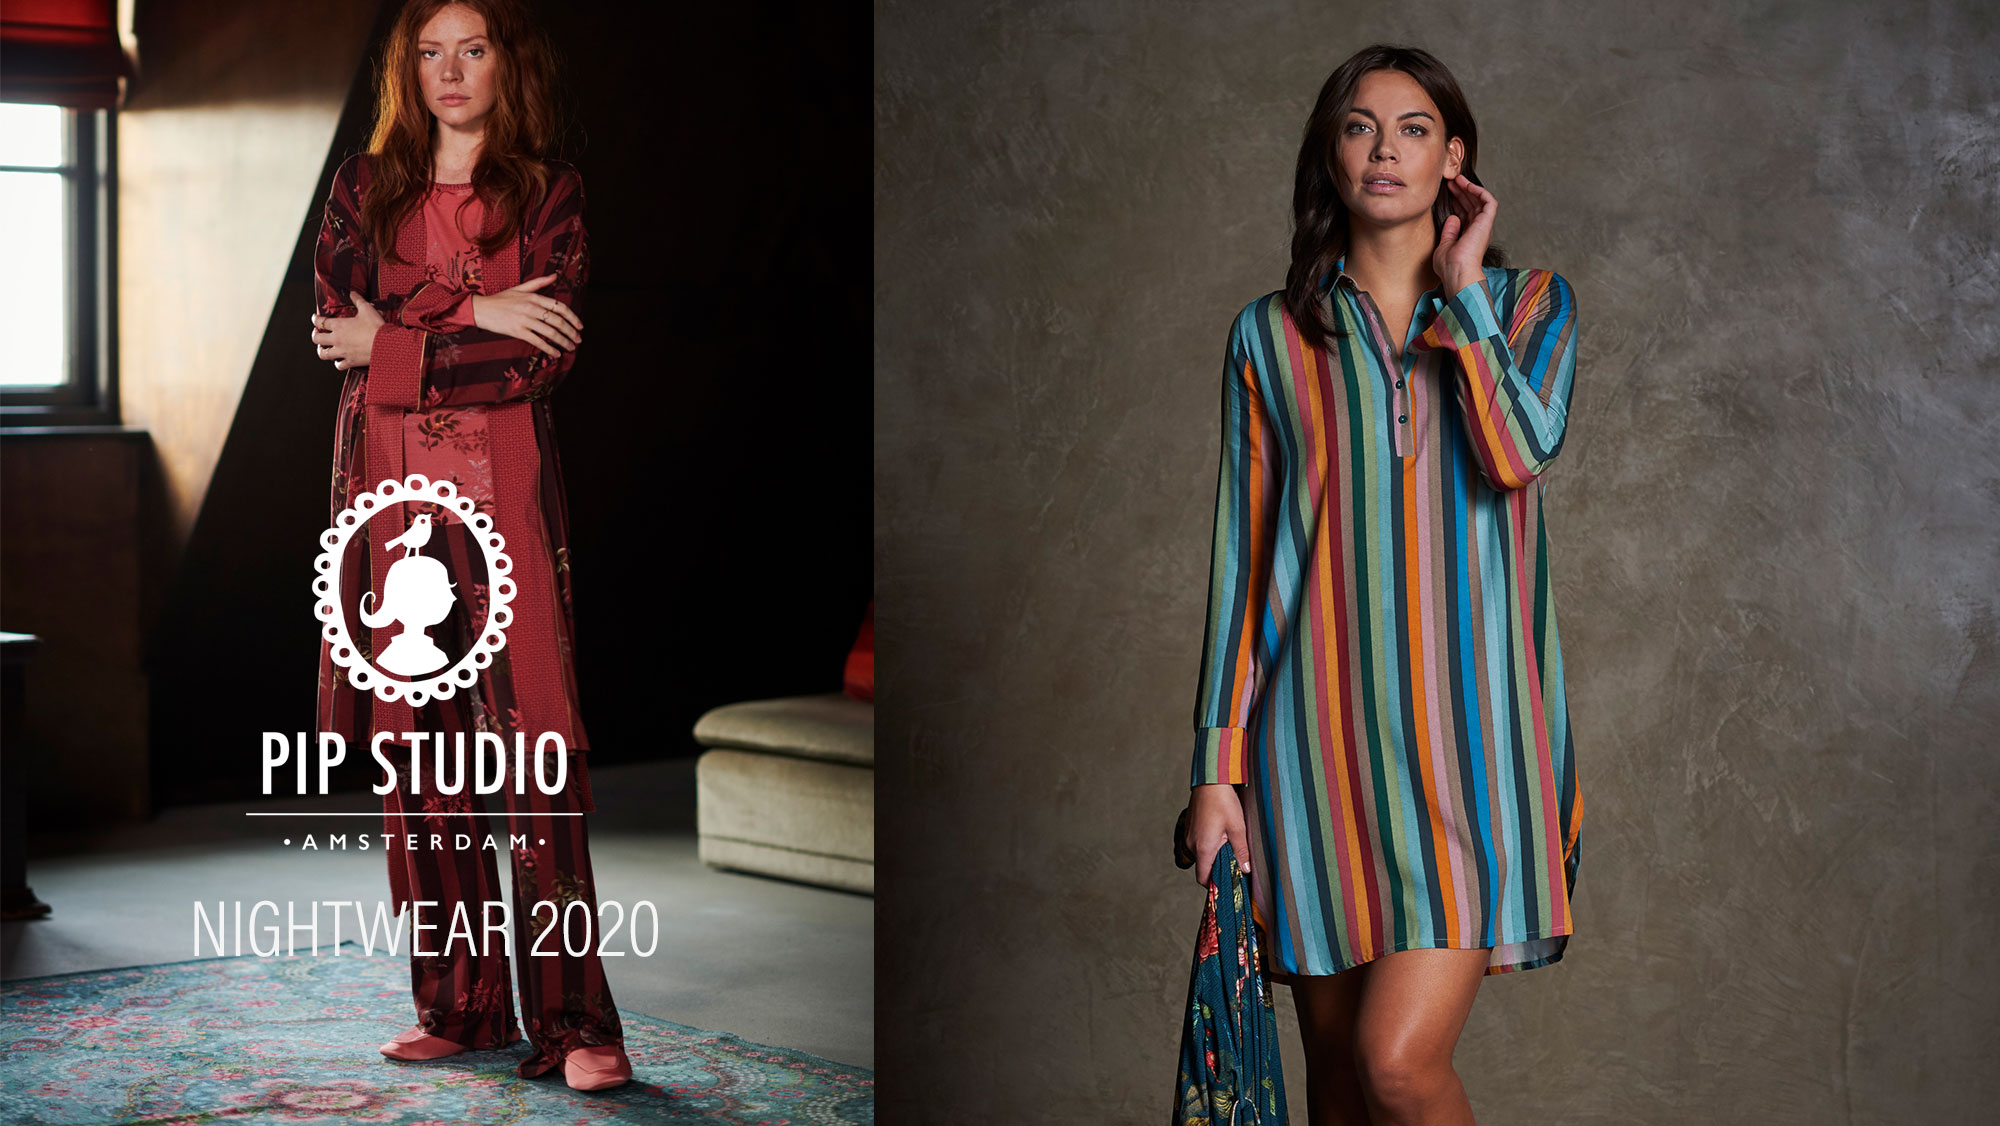 Pip Studio Nightwear 2020-2